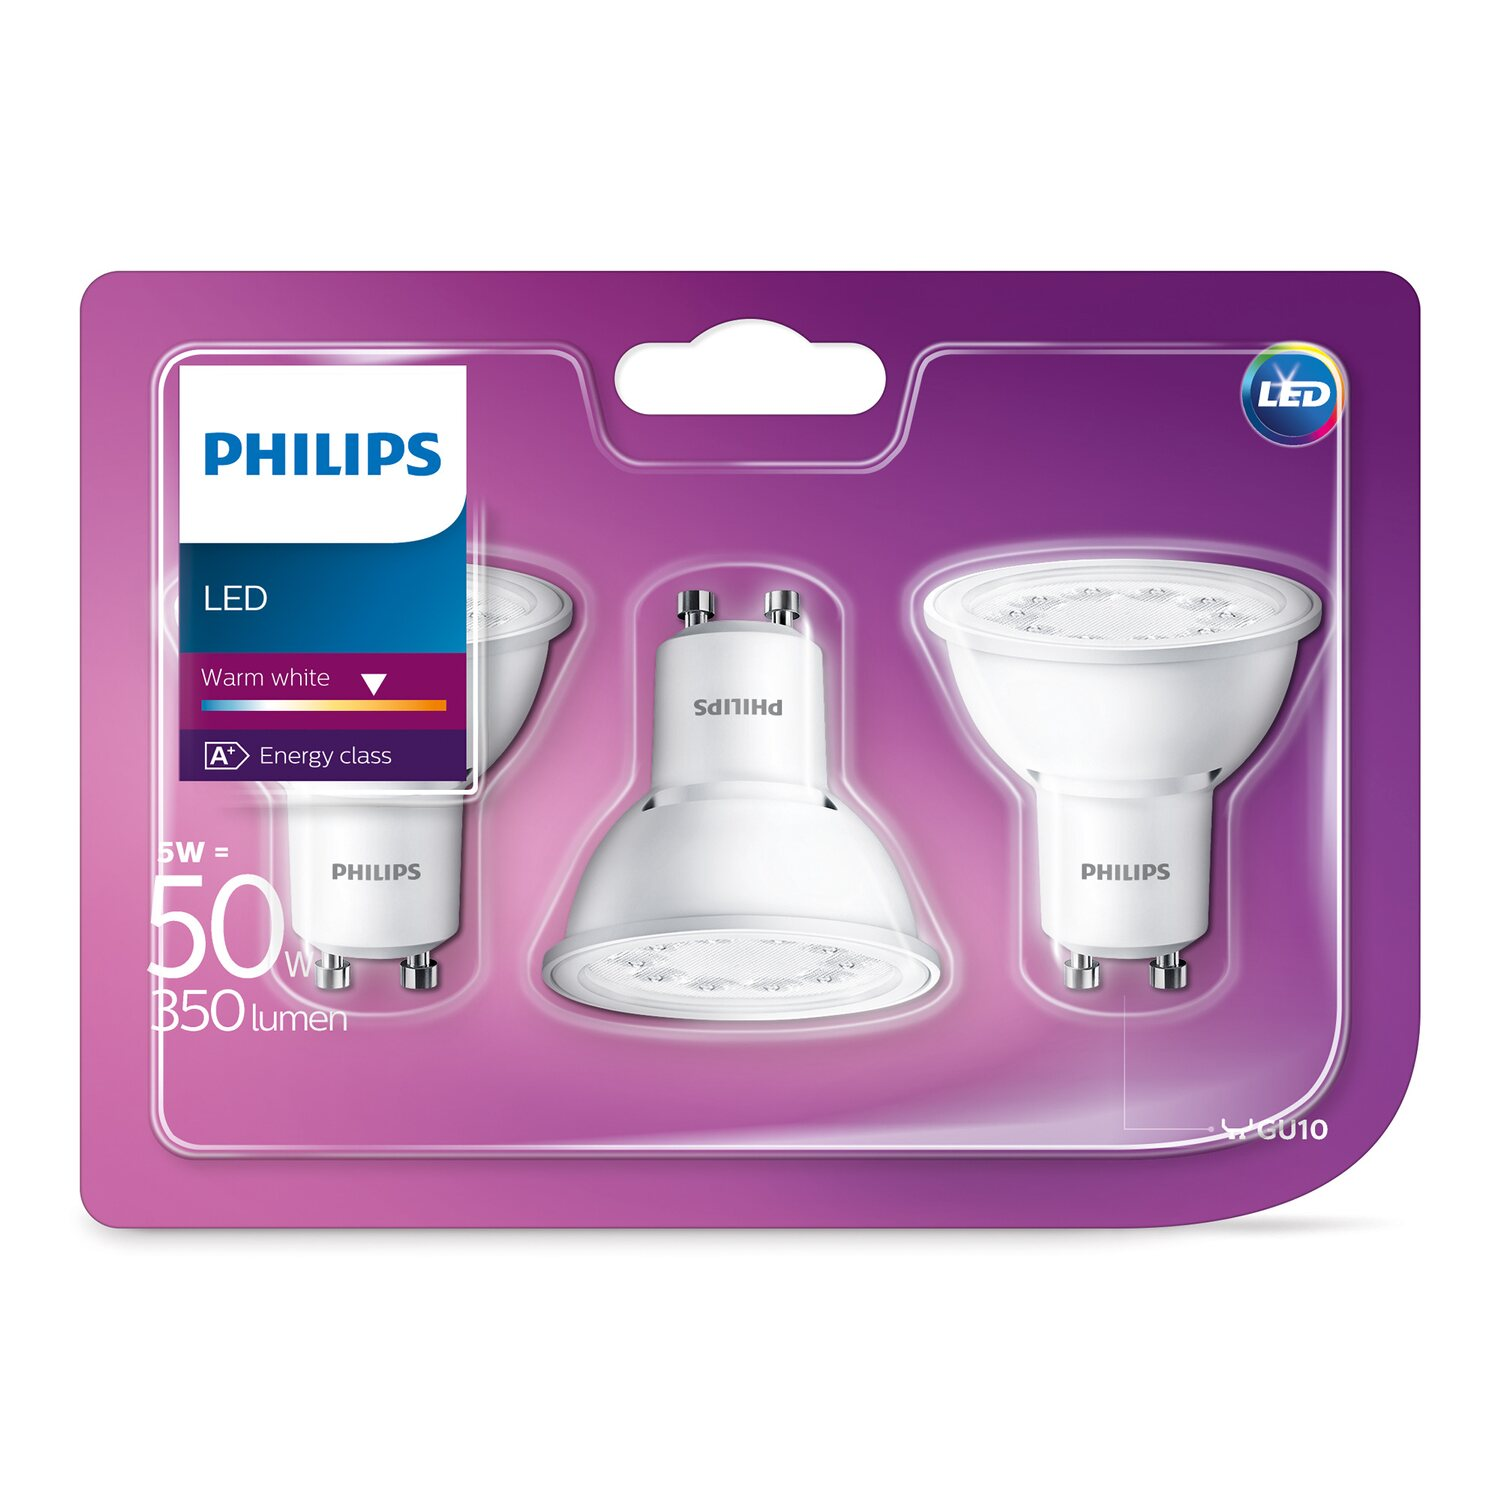 philips led leuchtmittel eek a gu10 reflektor 5 w 350. Black Bedroom Furniture Sets. Home Design Ideas